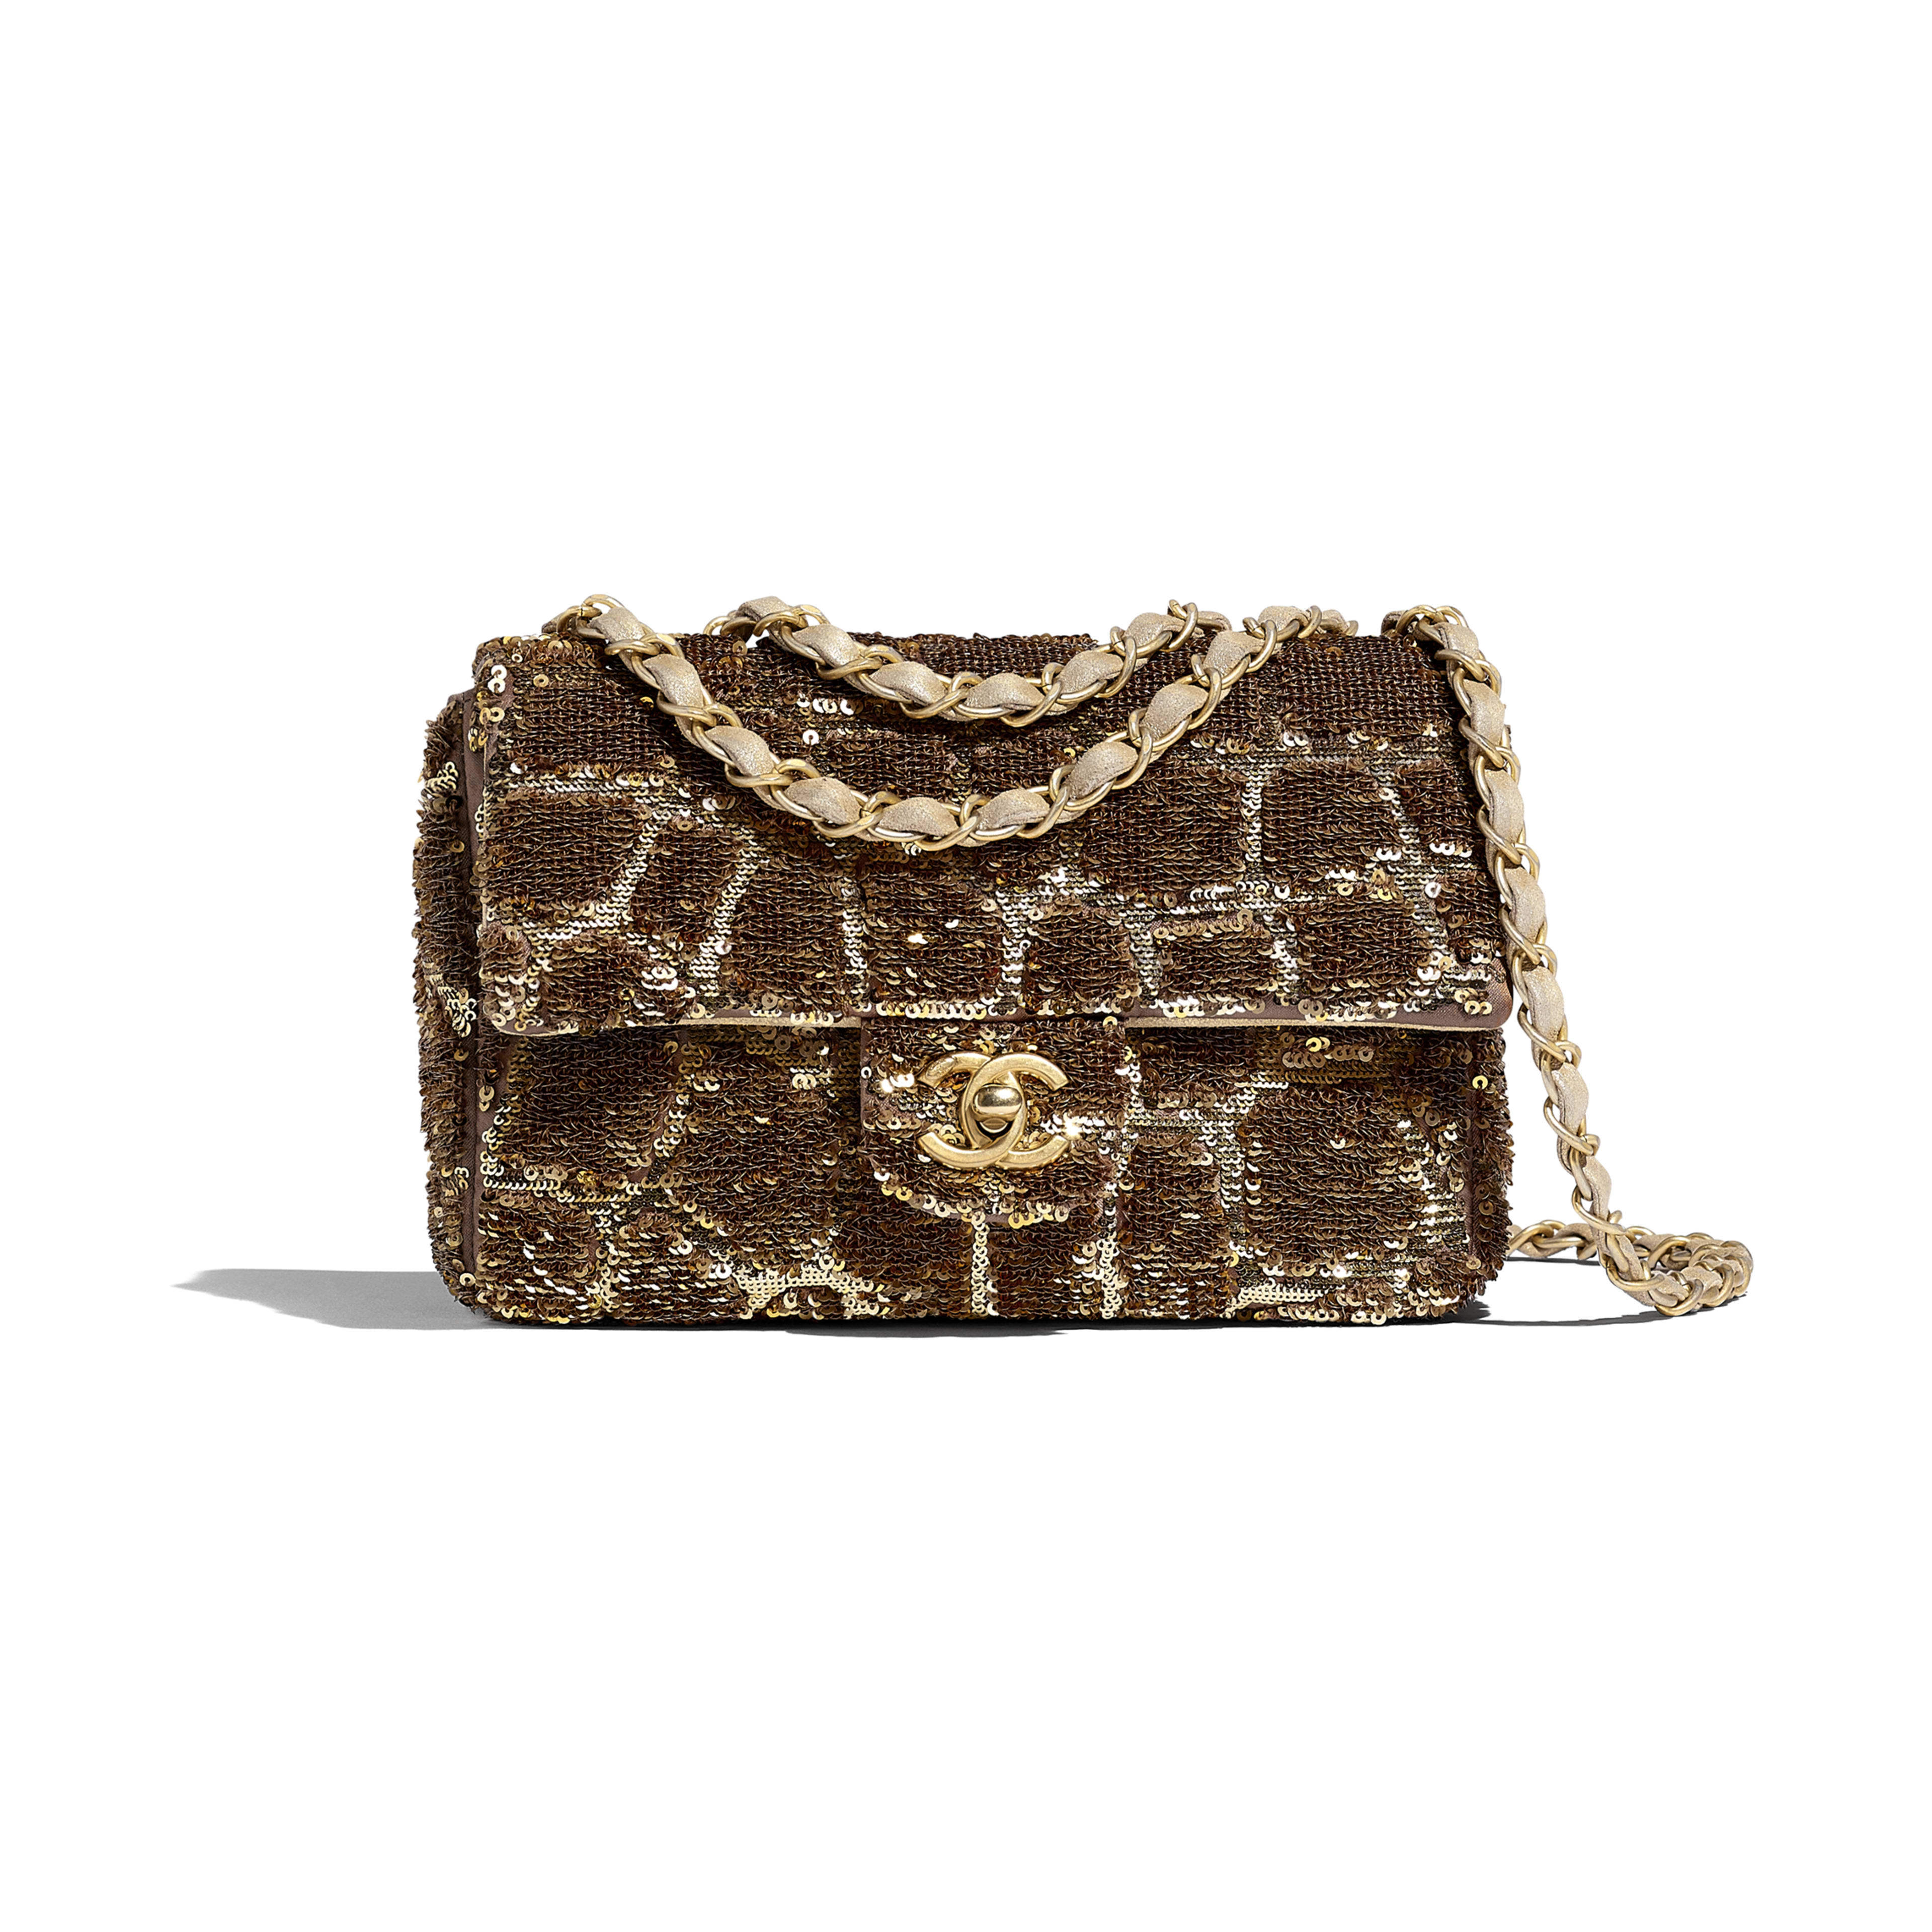 Small Flap Bag - Gold & Copper - Sequins & Gold-Tone Metal - Default view - see full sized version